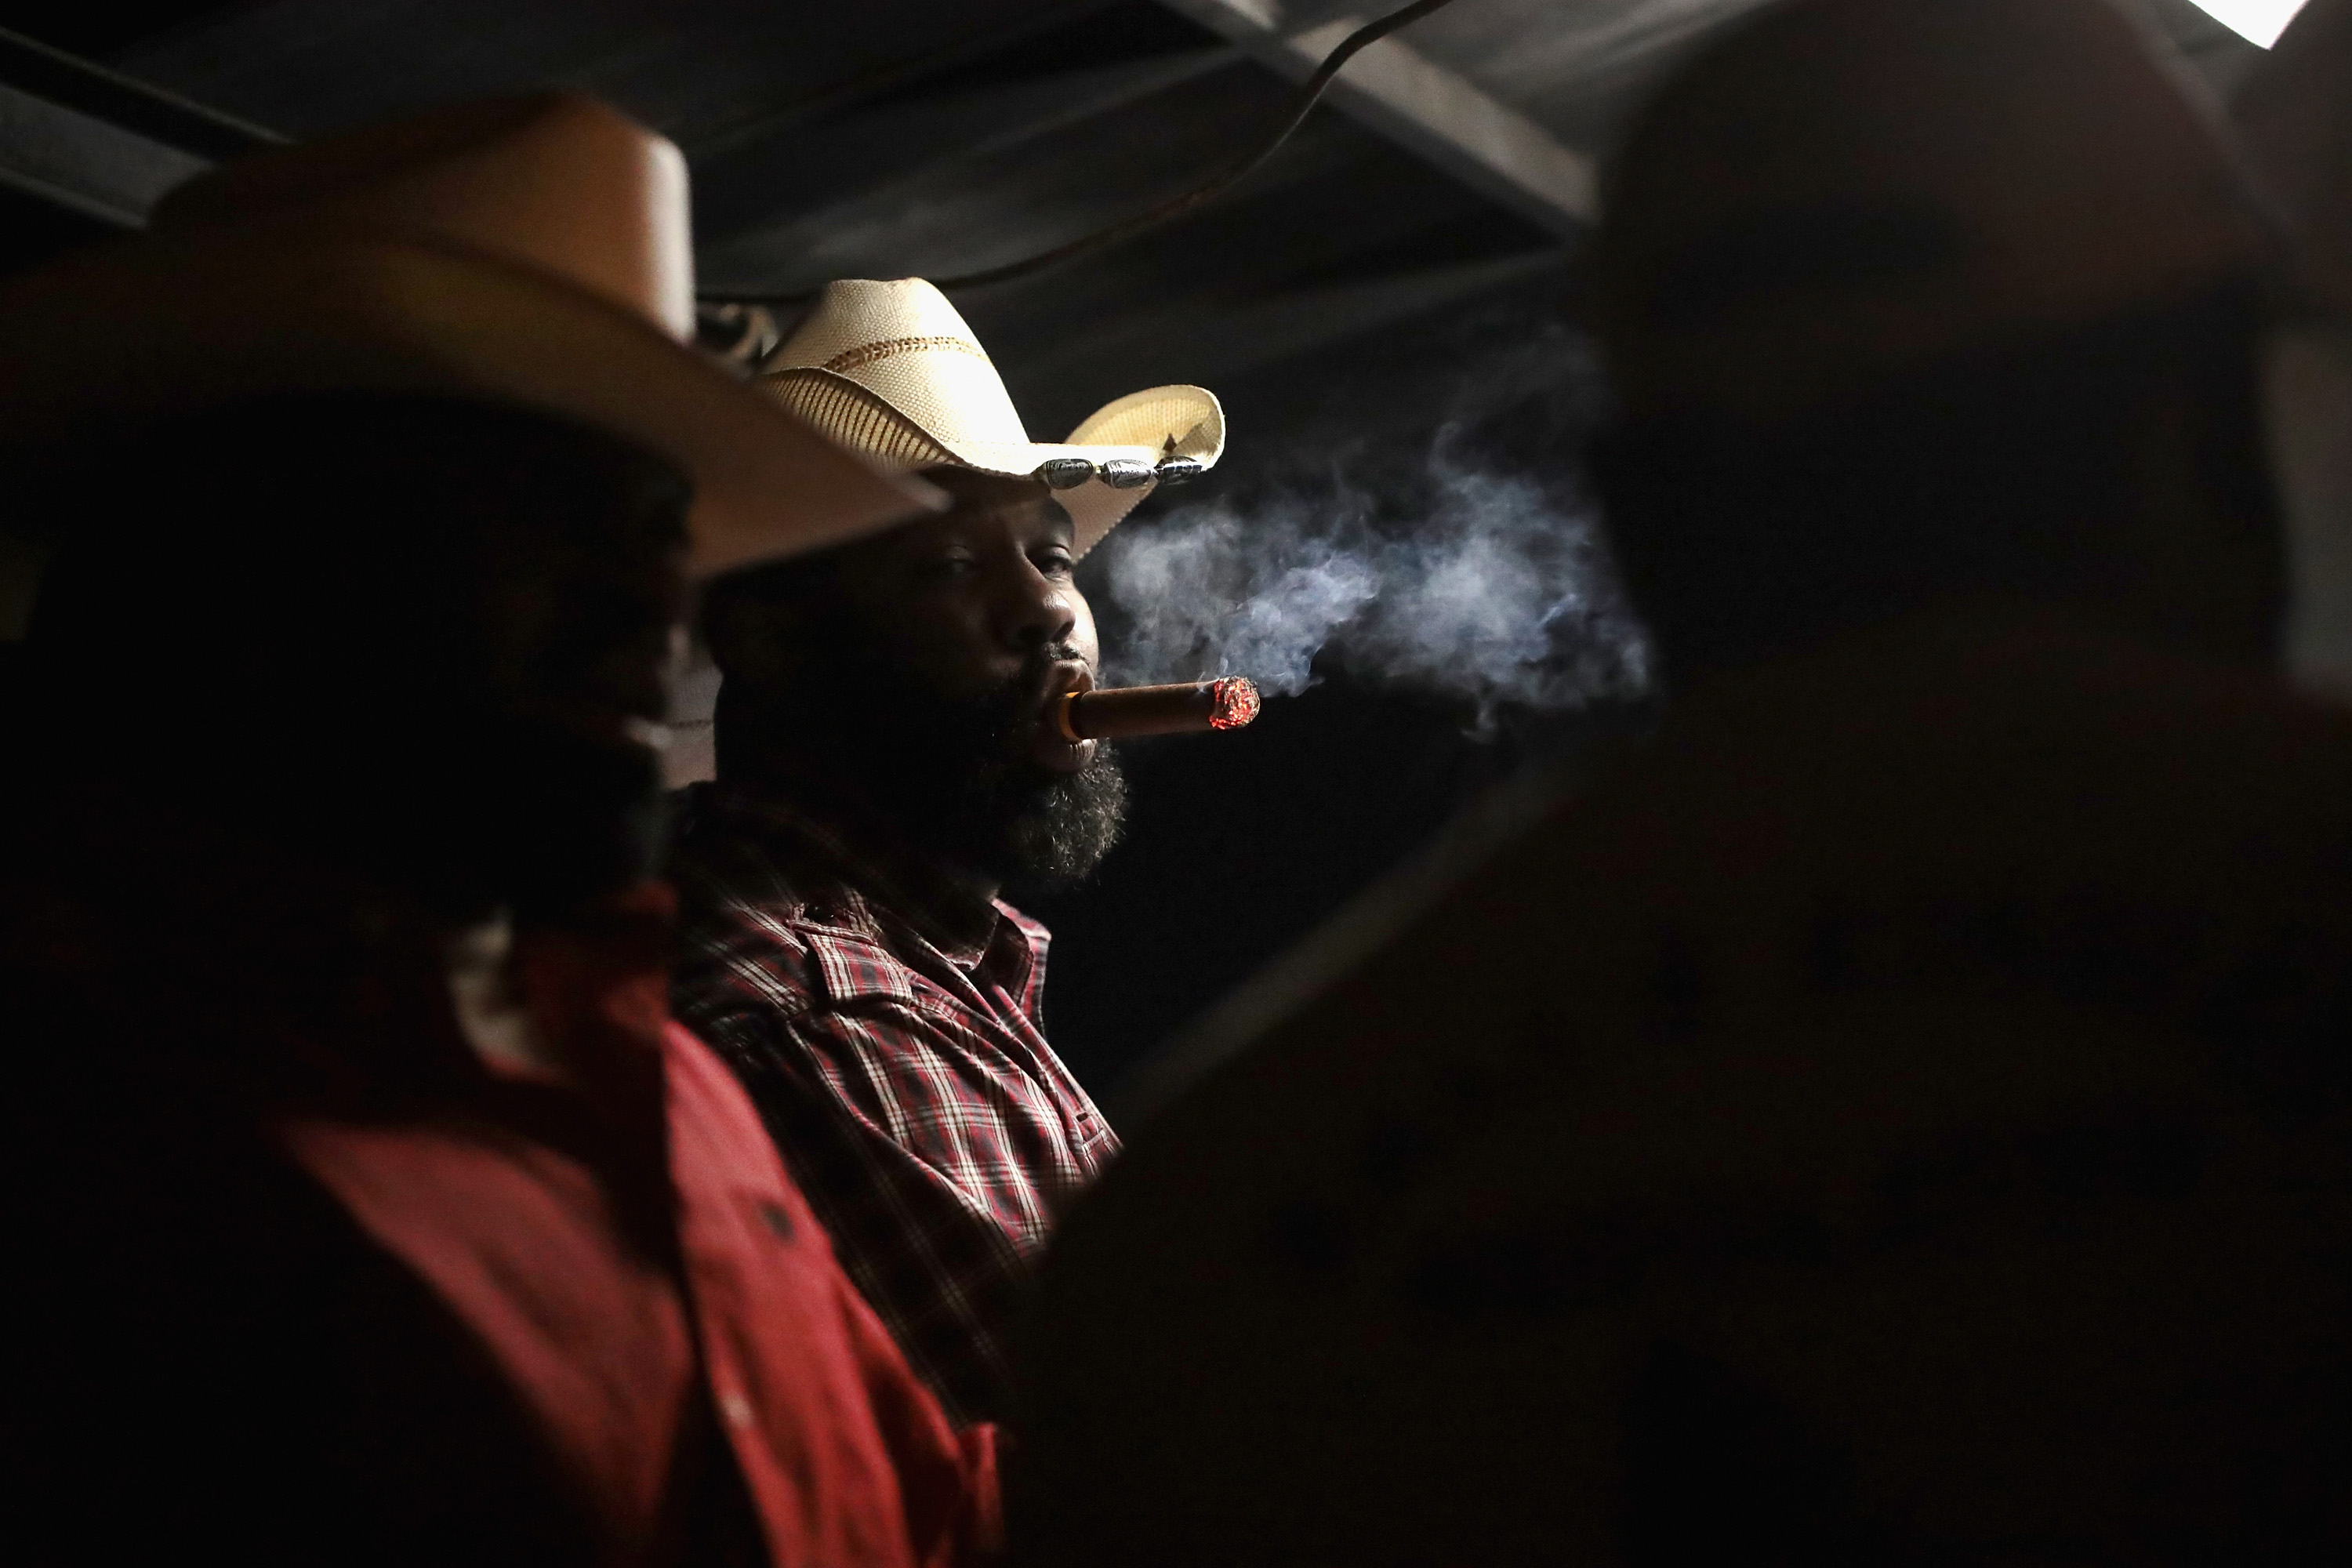 a93513f0cfc Cowboys relax at a late-night barbecue following a day of competition at  the Bill Pickett Invitational Rodeo on April 1 in Memphis